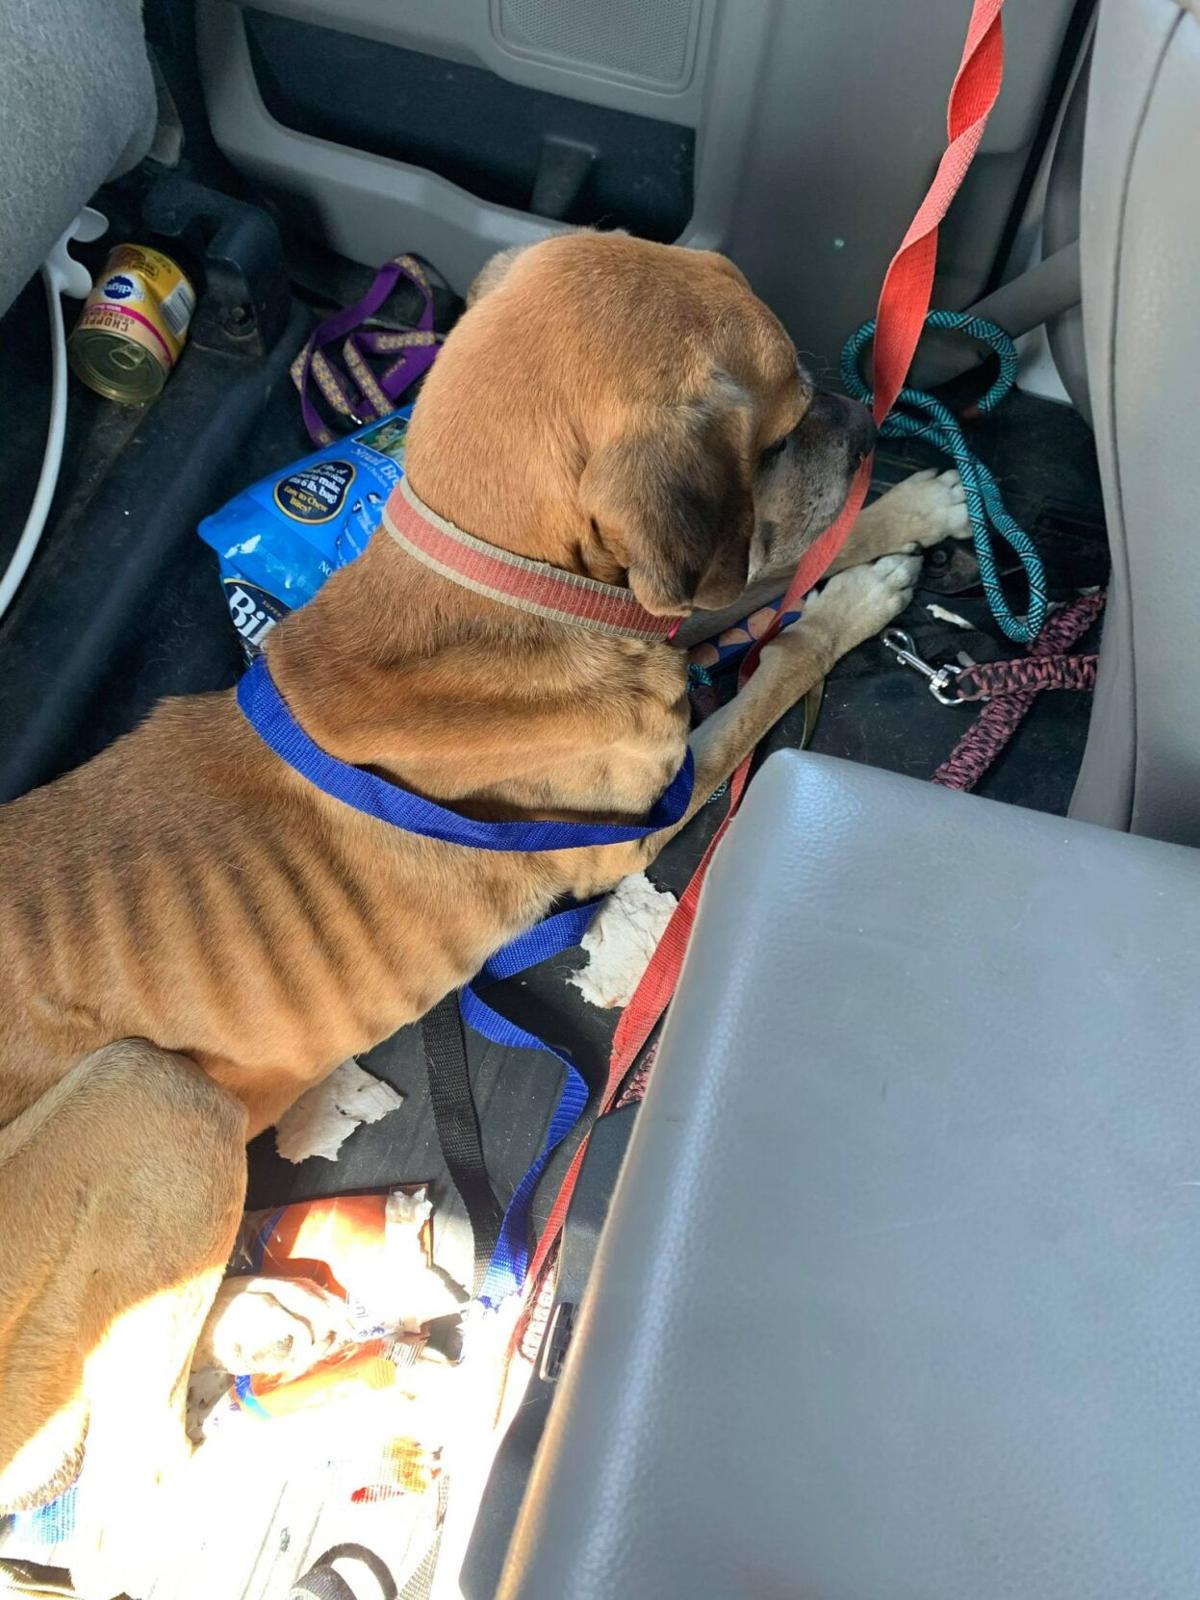 Animal control officers find dog suffering malnutrition, ask community for help